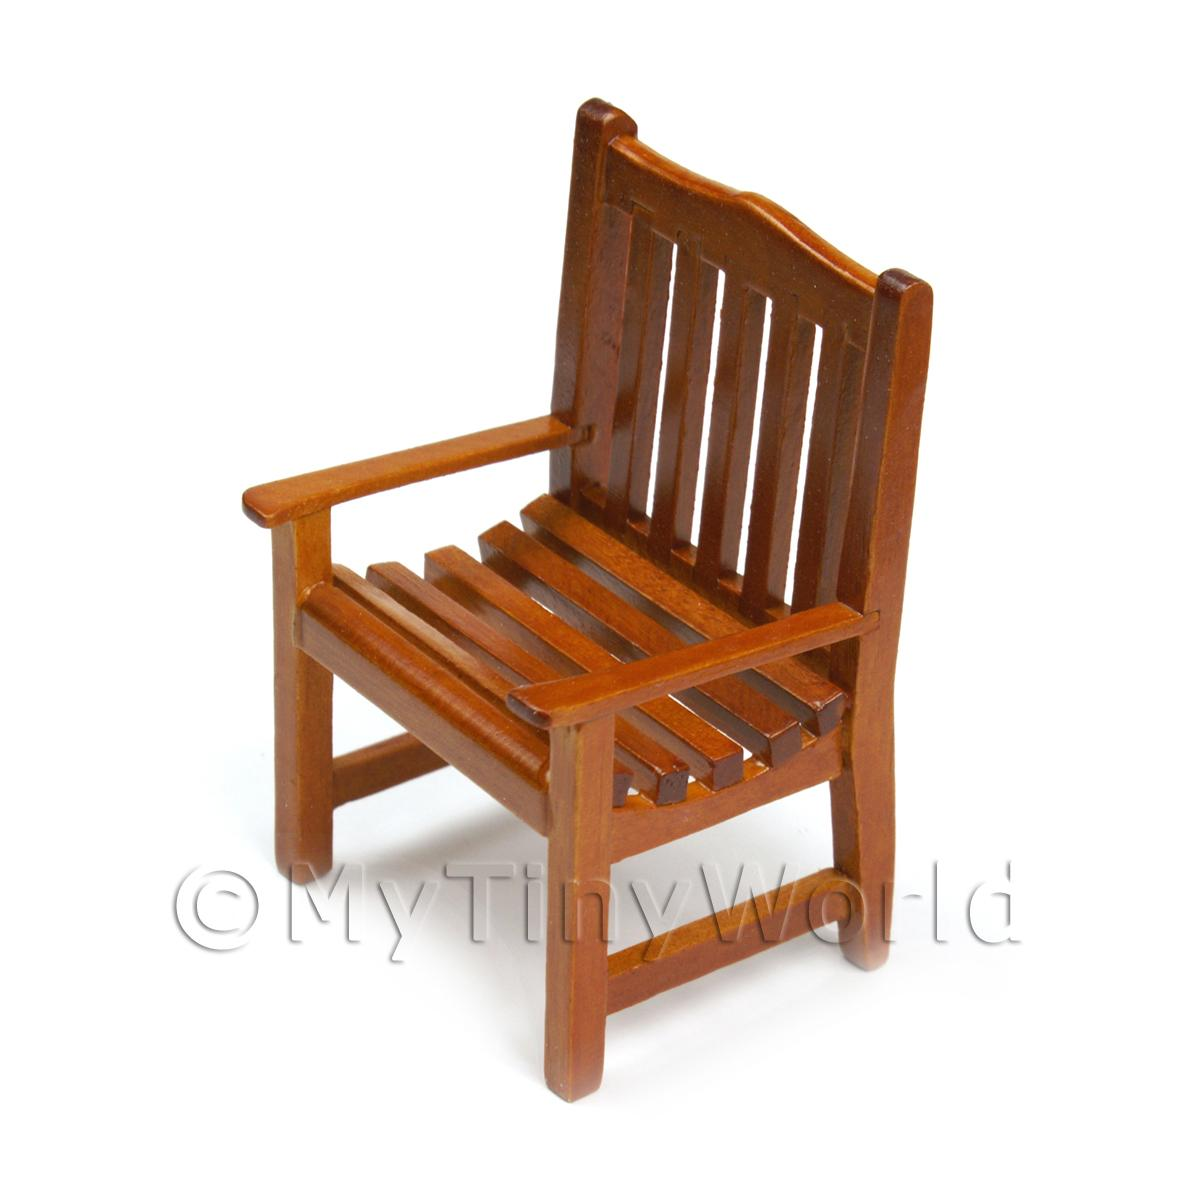 chairs  dolls house miniature  mytinyworld - dolls house miniature solid wood slatted garden chair